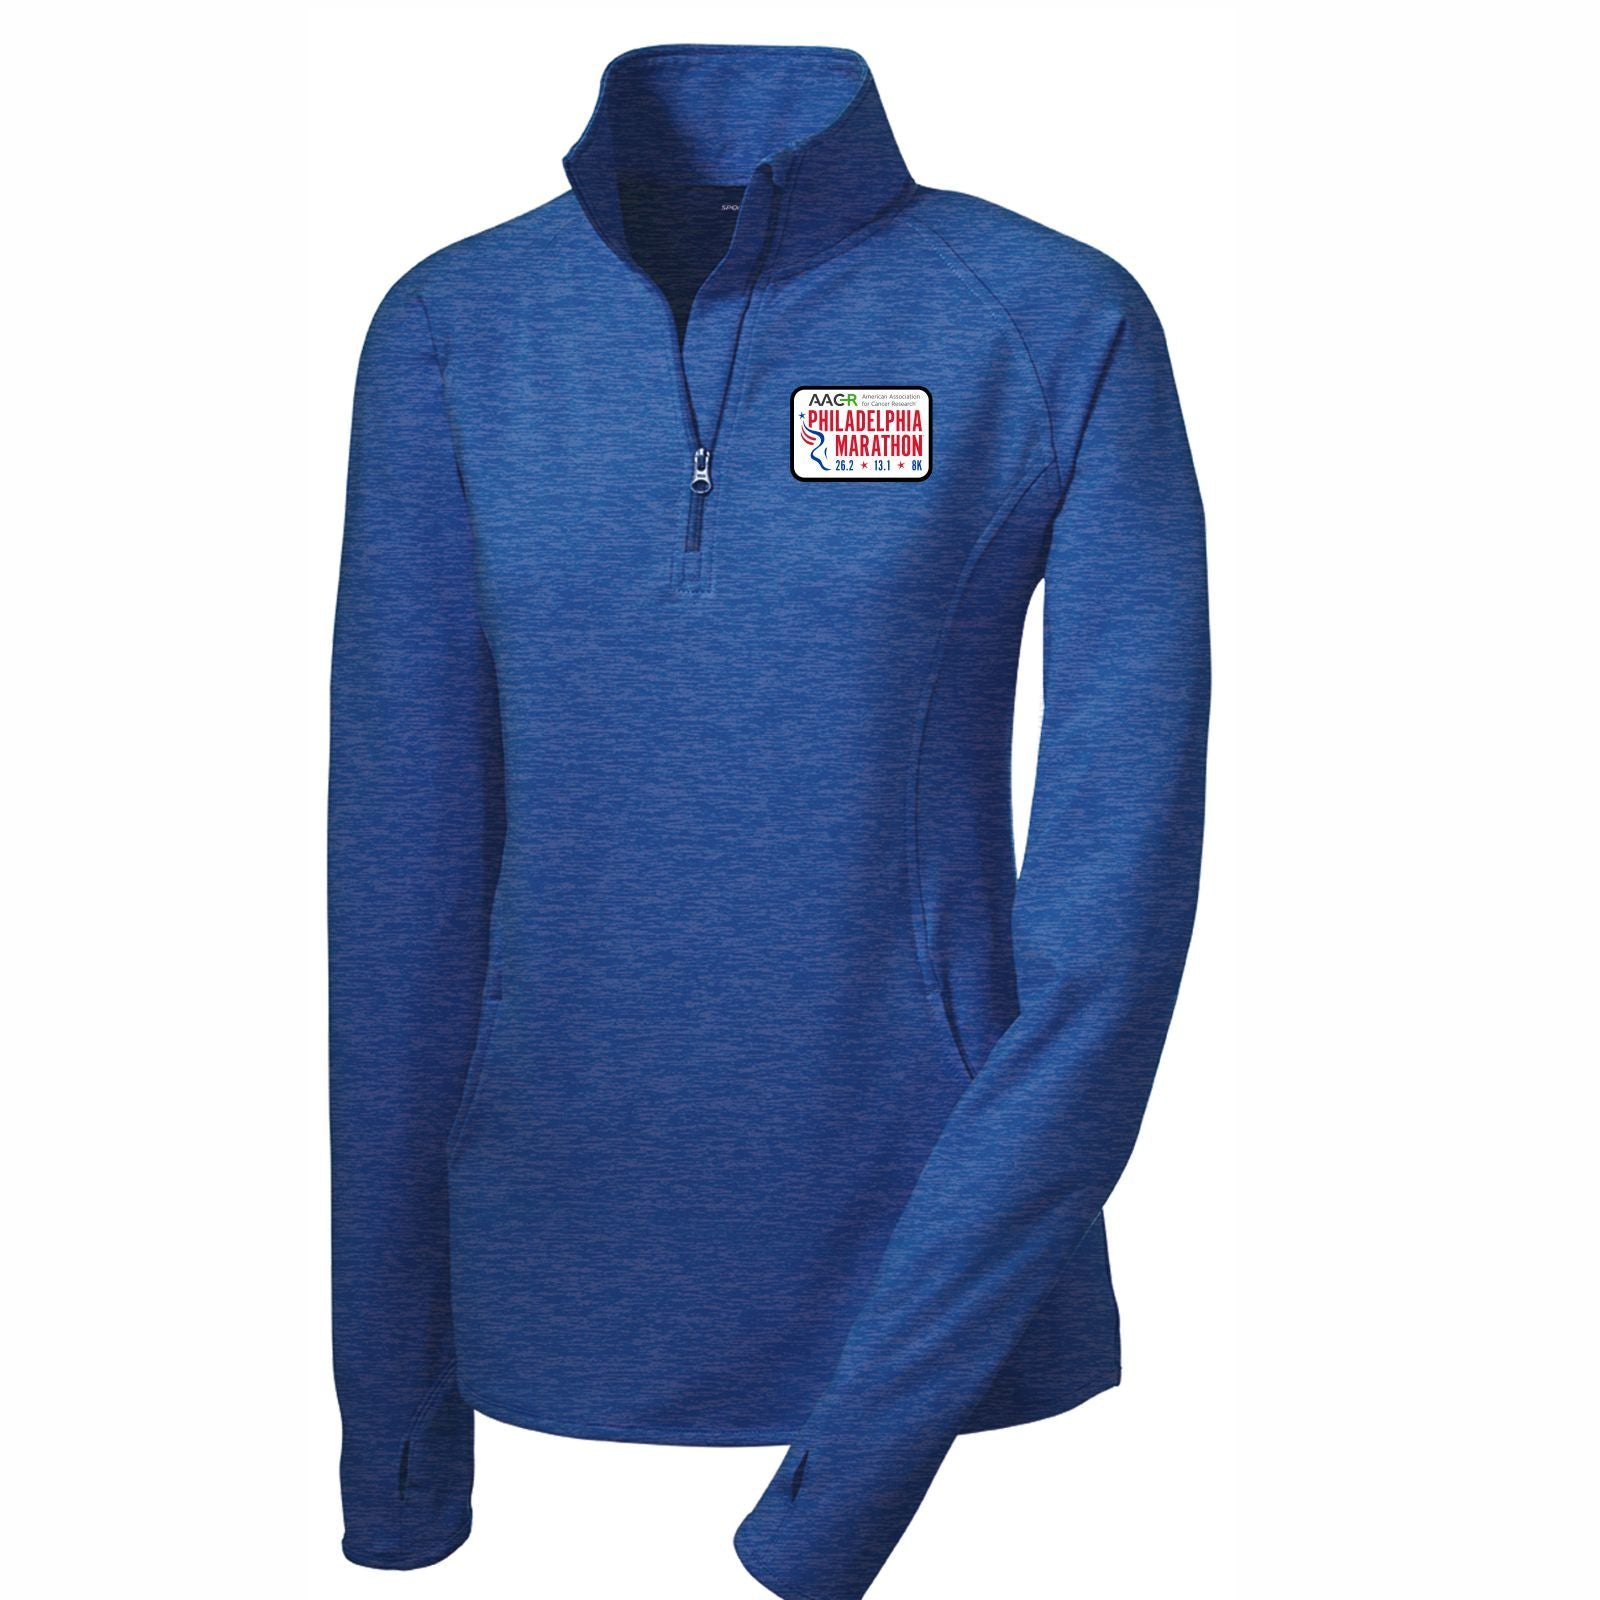 AACR Philadelphia Marathon 'Left Chest Embroidered' Patch design Women's Tech 1/2 Zip Pullover - True Royal Heather